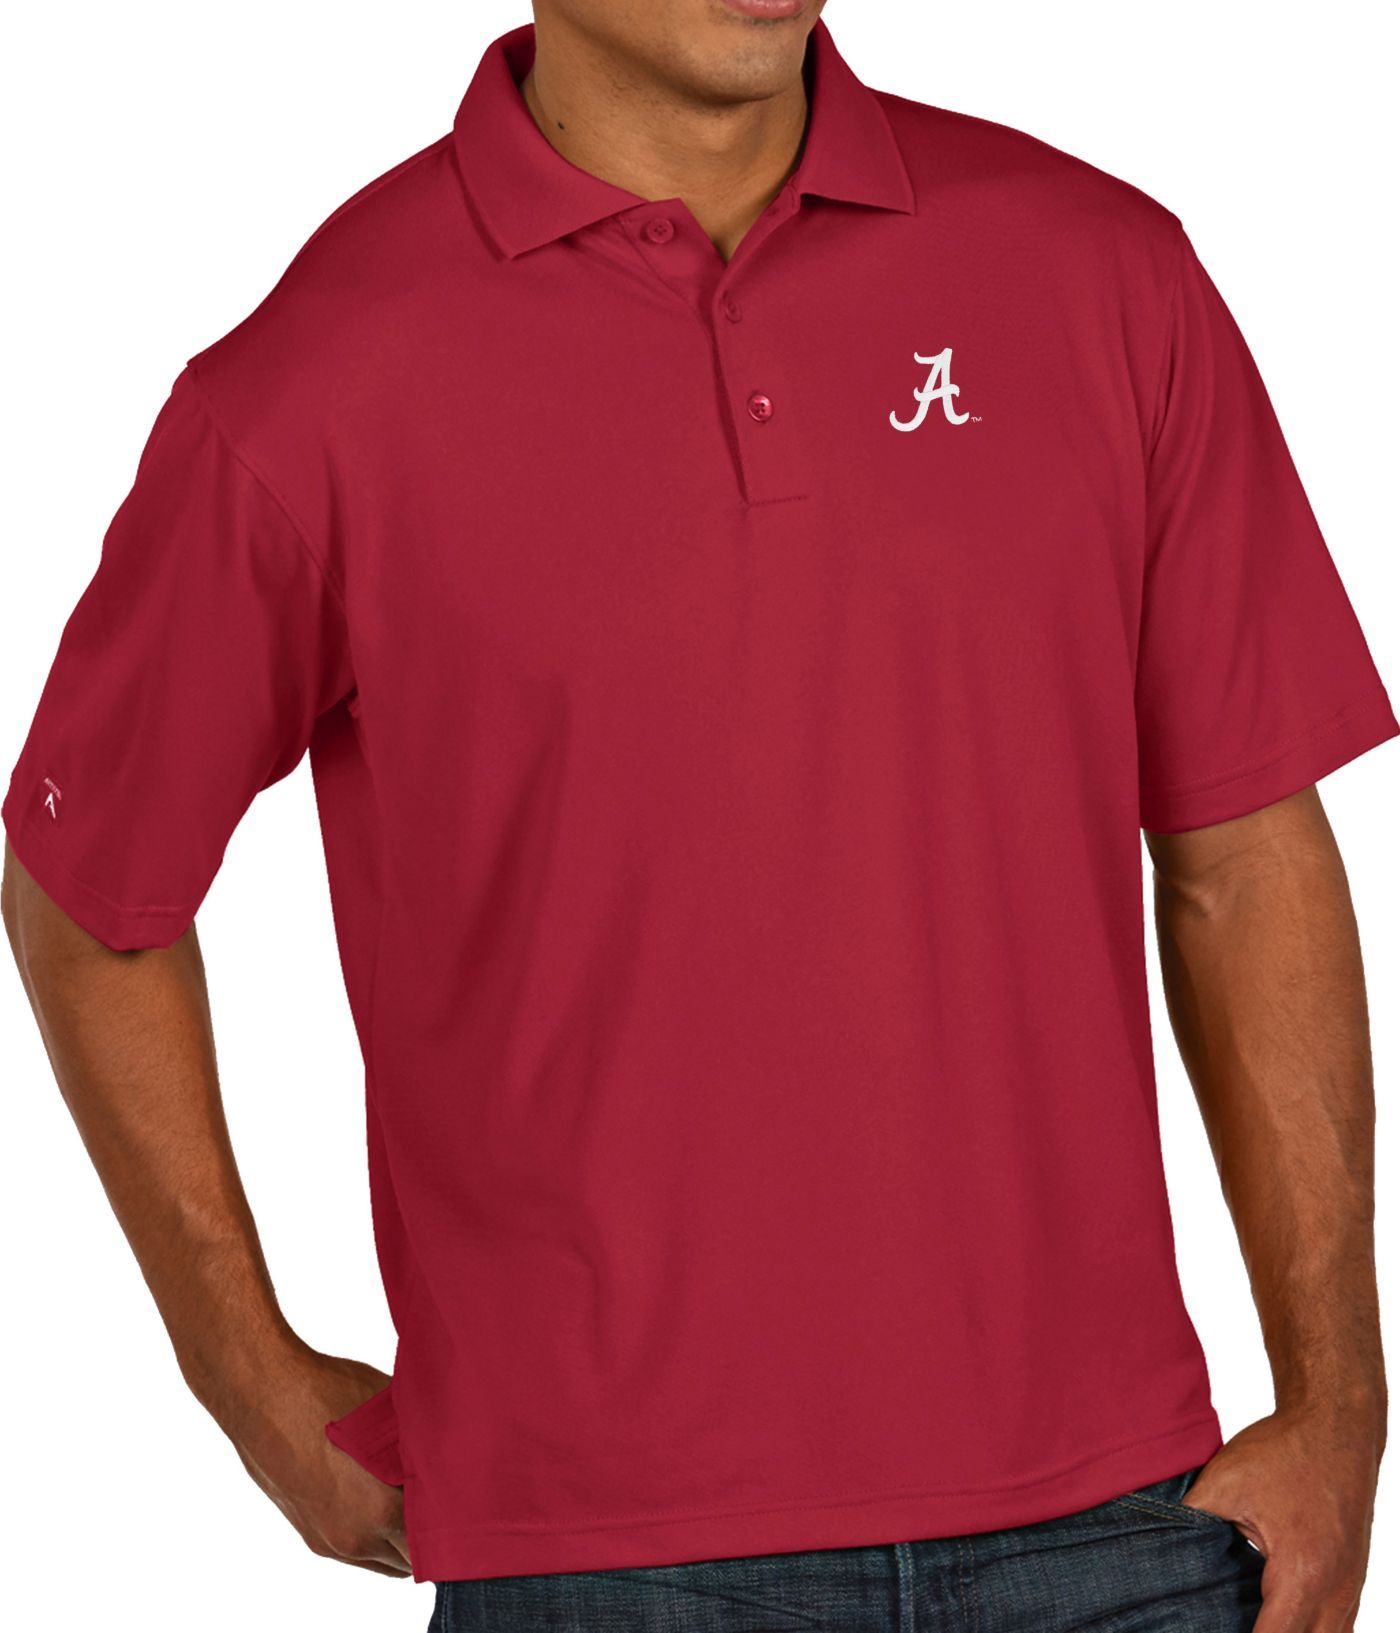 Antigua Men's Alabama Crimson Tide Crimson Pique Xtra-Lite Polo